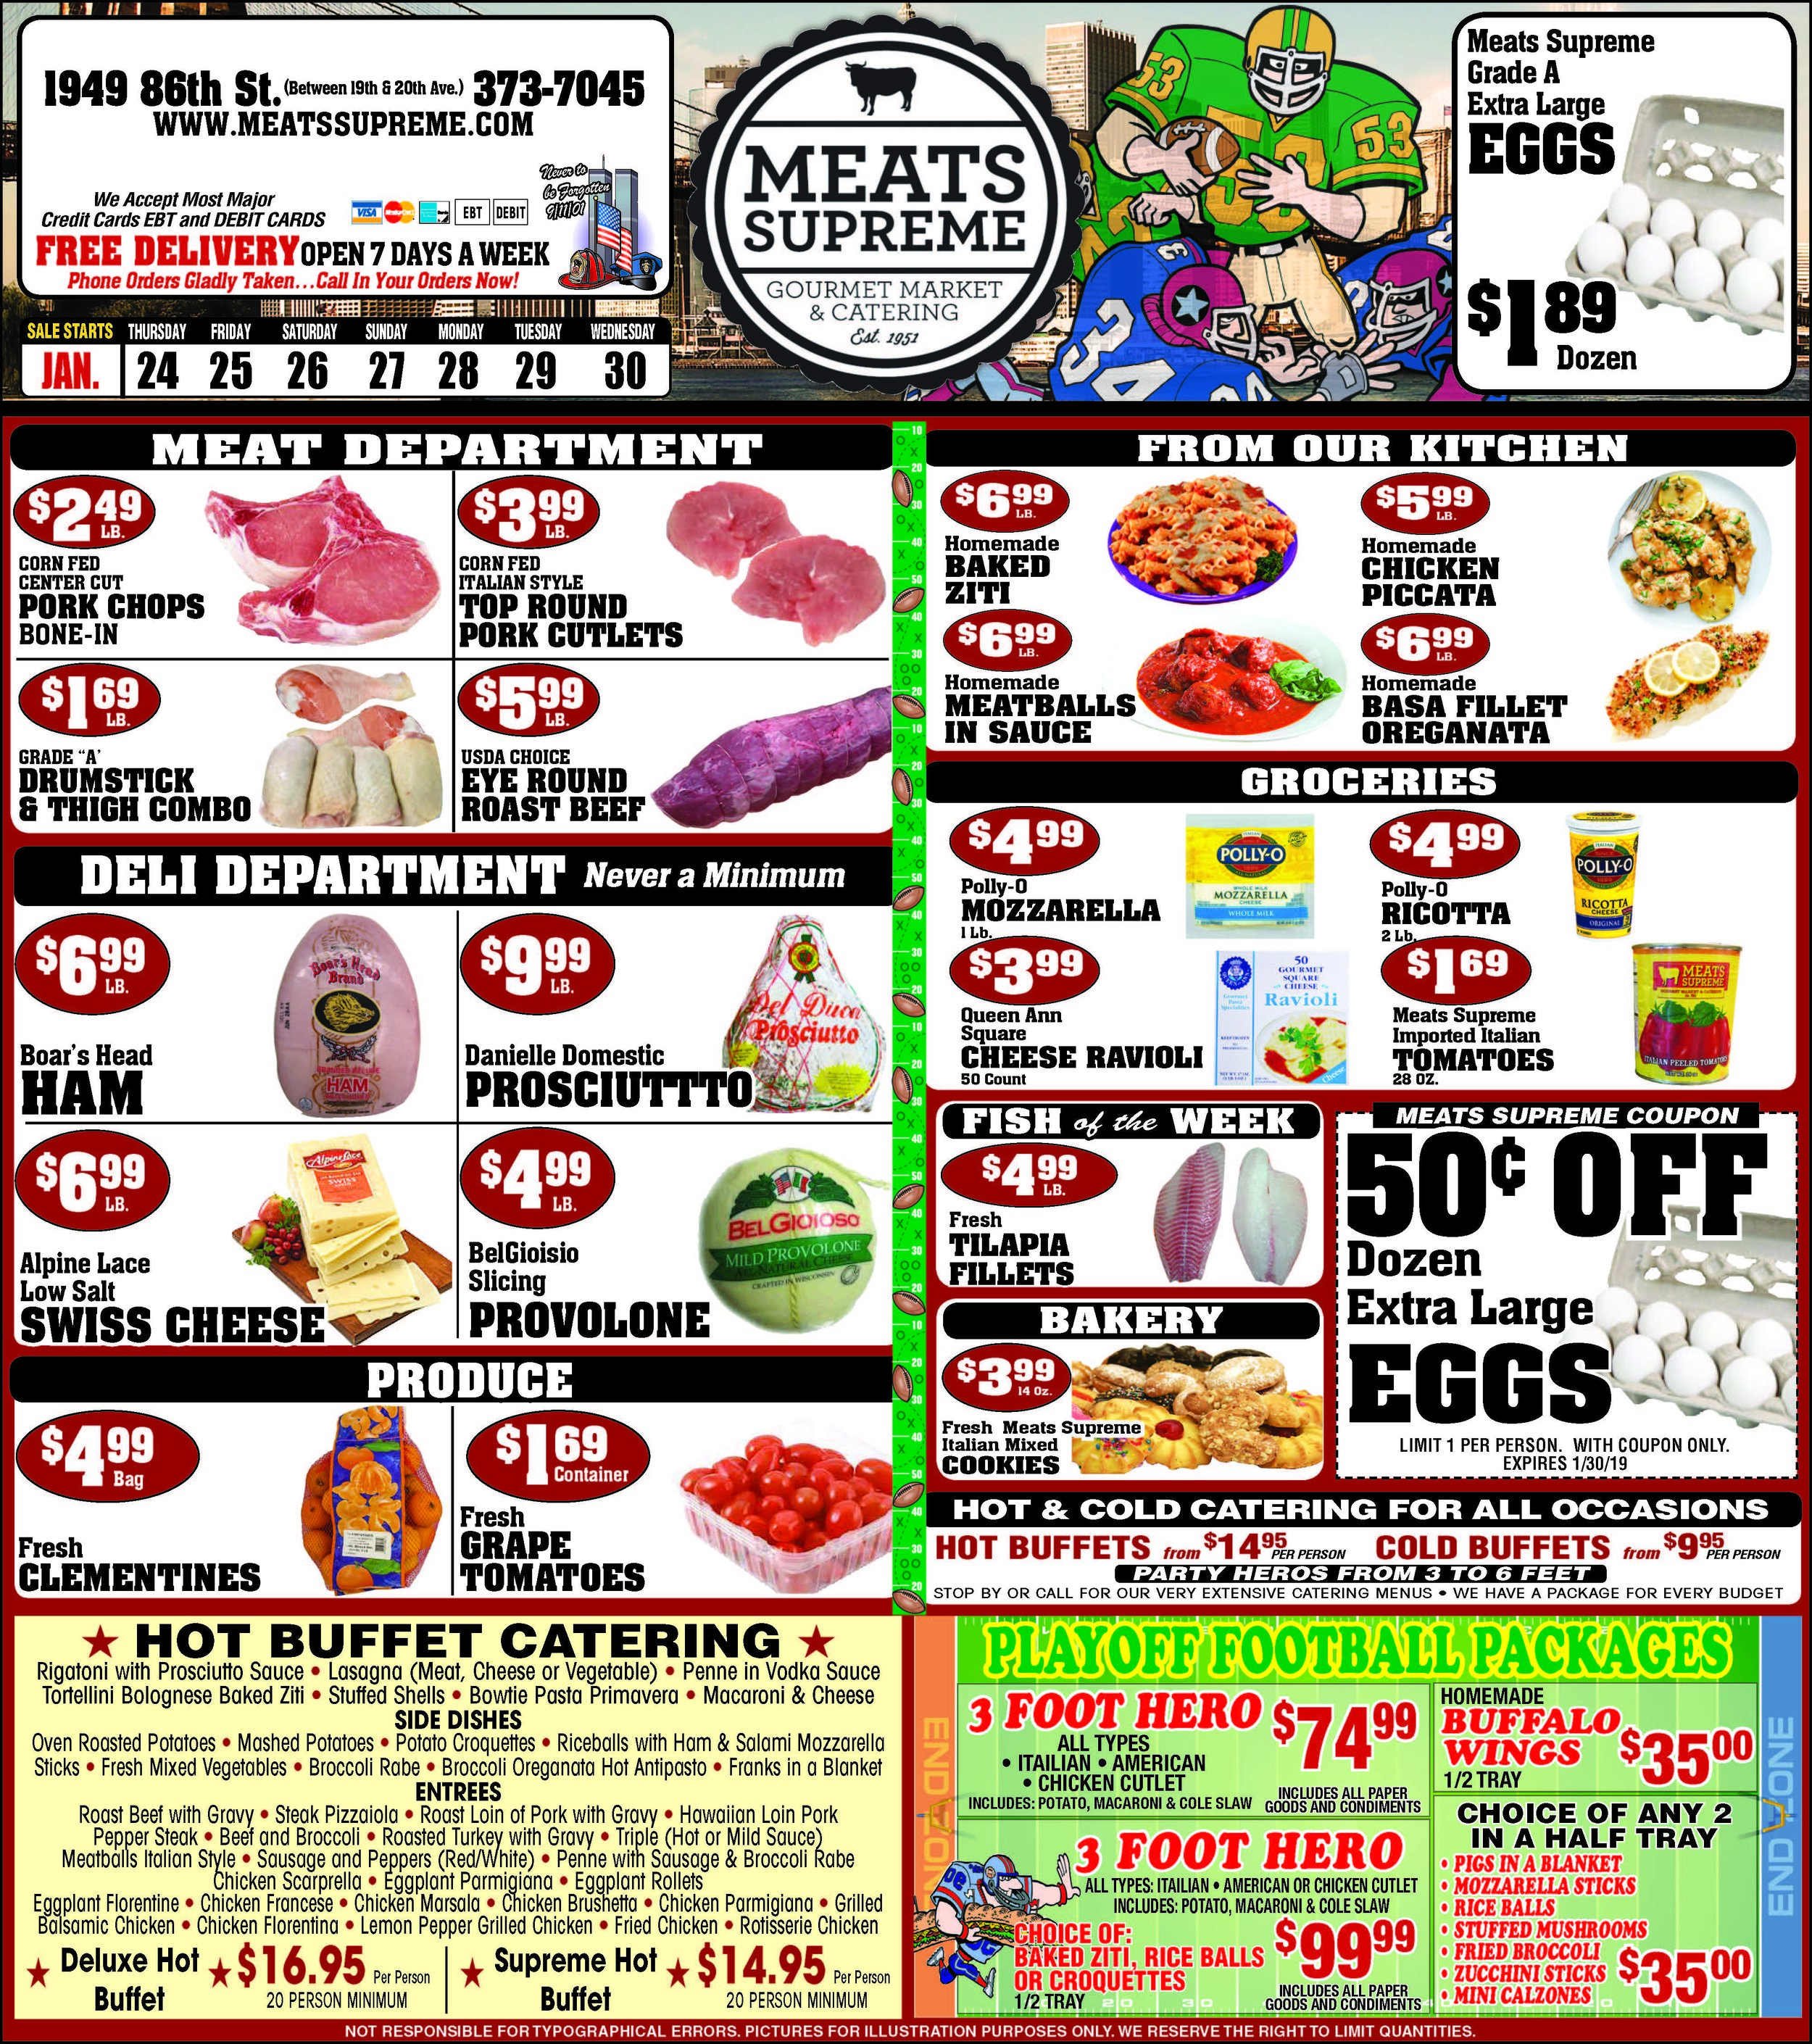 Weekly Sales - New promotions every week! Packed with savings on items in every department.